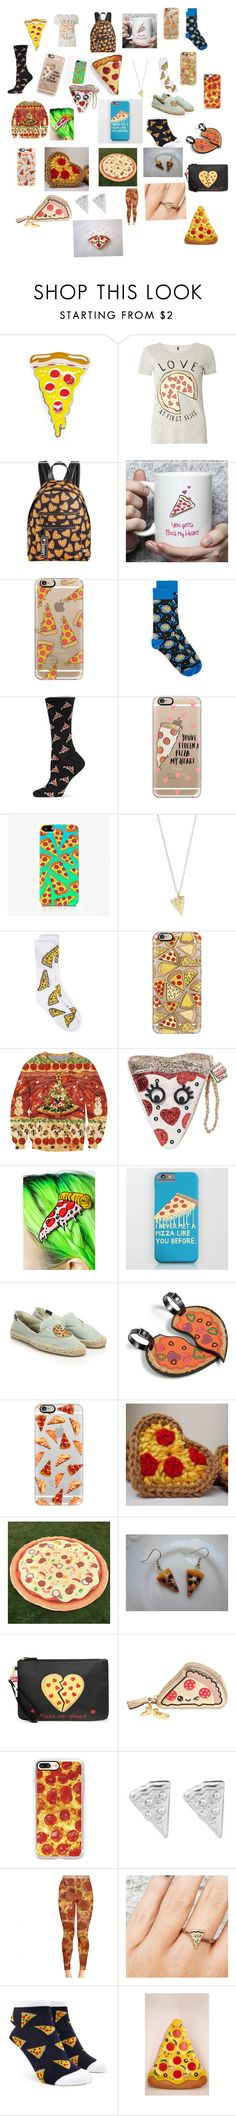 """Pizza!!! 🍕"" by lolo823 ❤ liked on Polyvore featuring Sourpuss, Dorothy Perkins, Circus by Sam Edelman, Casetify, HOT SOX, The Small Print., Rock 'N Rose, Betsey Johnson, Cheap Monday and Soludos"